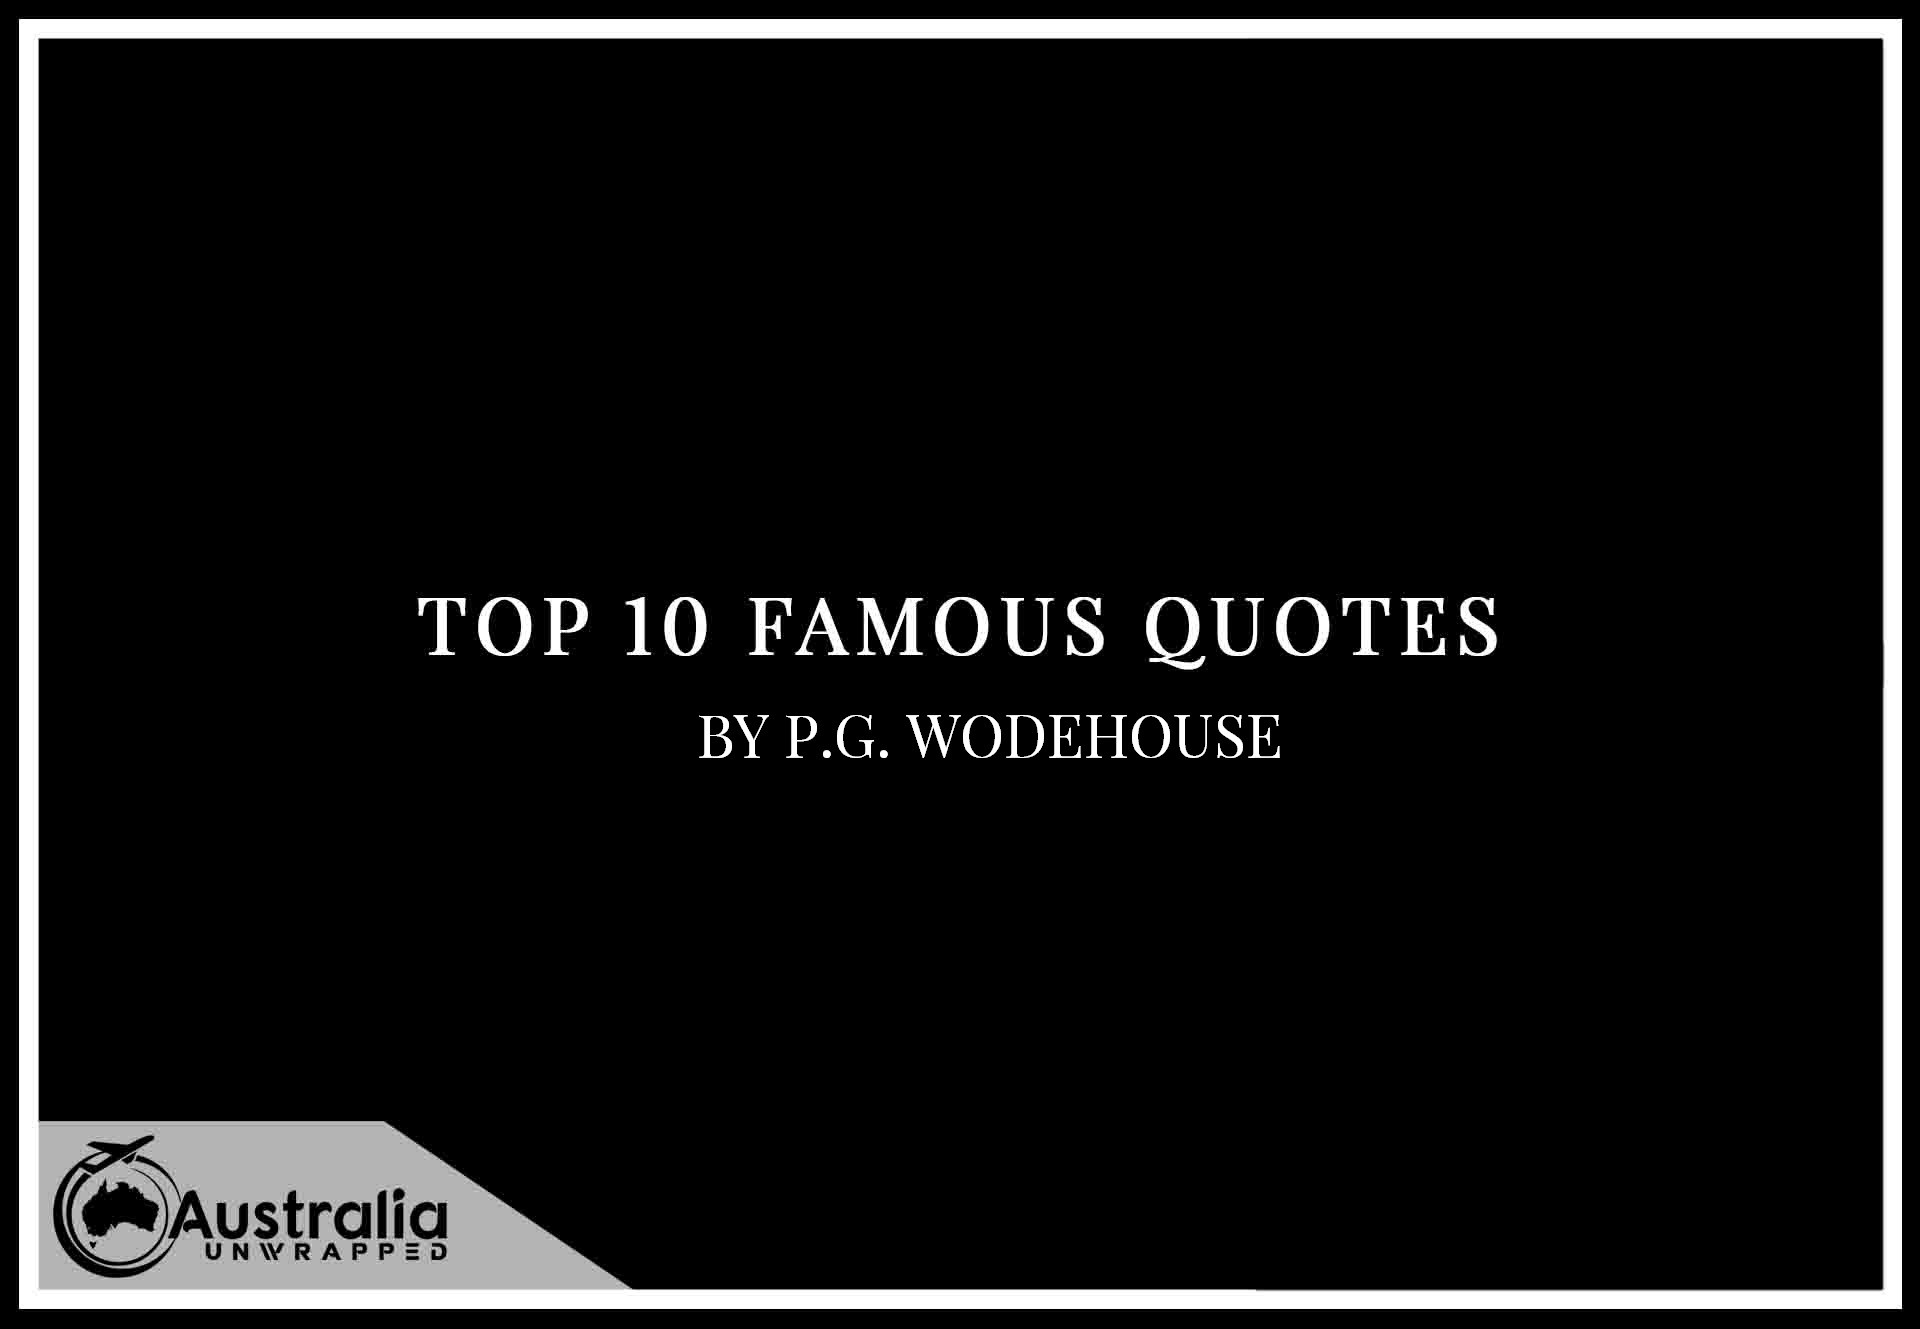 Top 10 Famous Quotes by Author P.G. Wodehouse